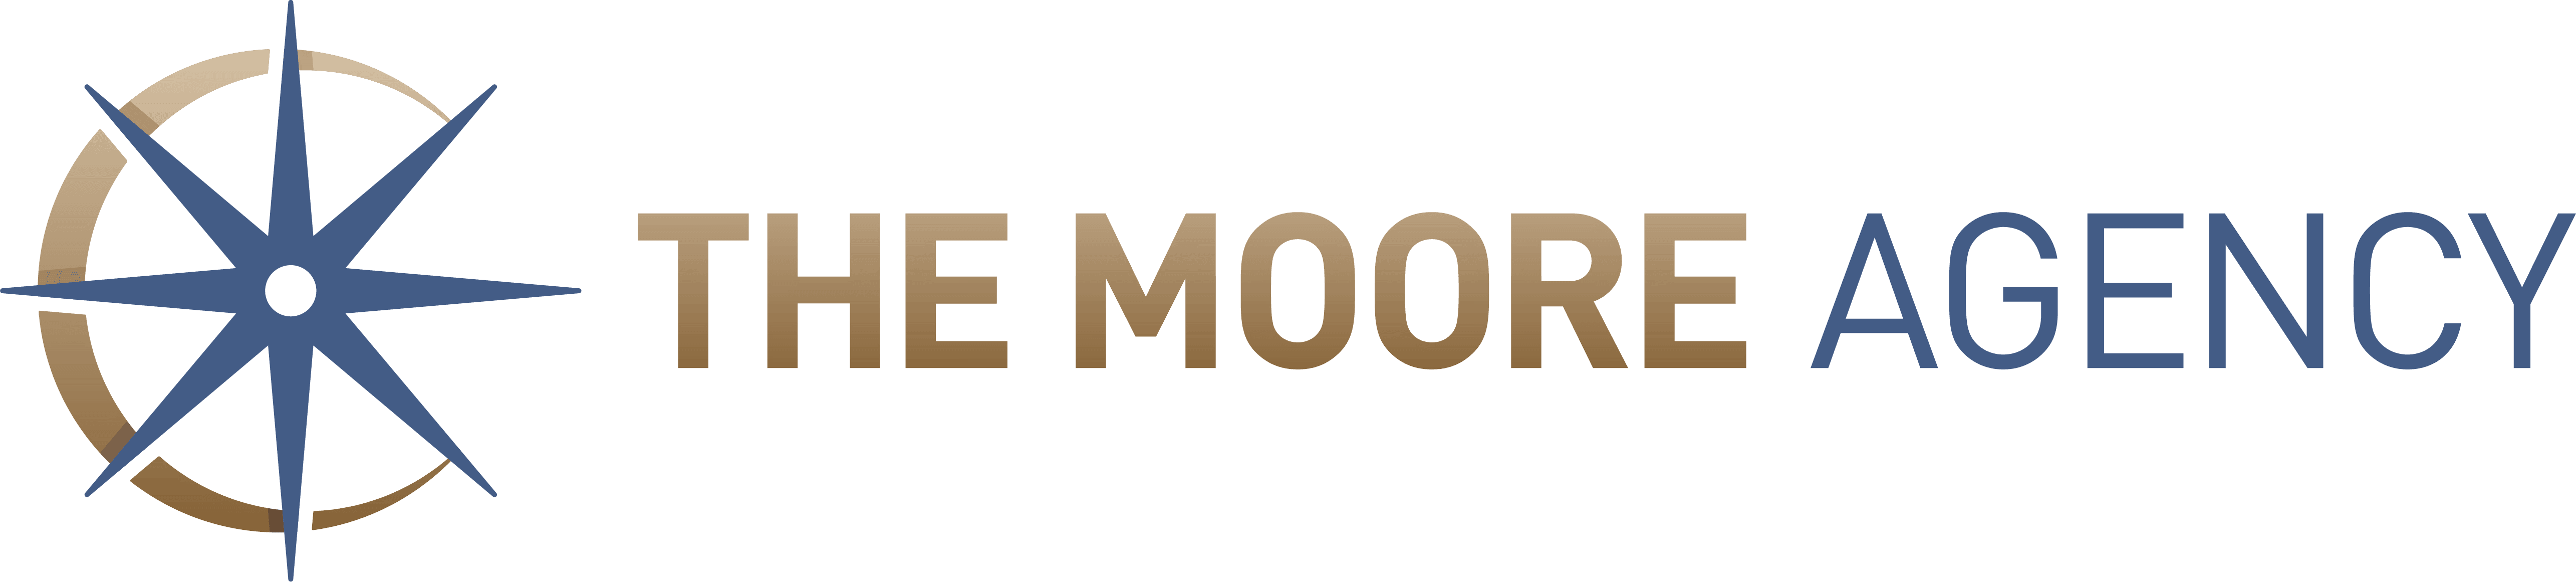 The Moore Agency Inc